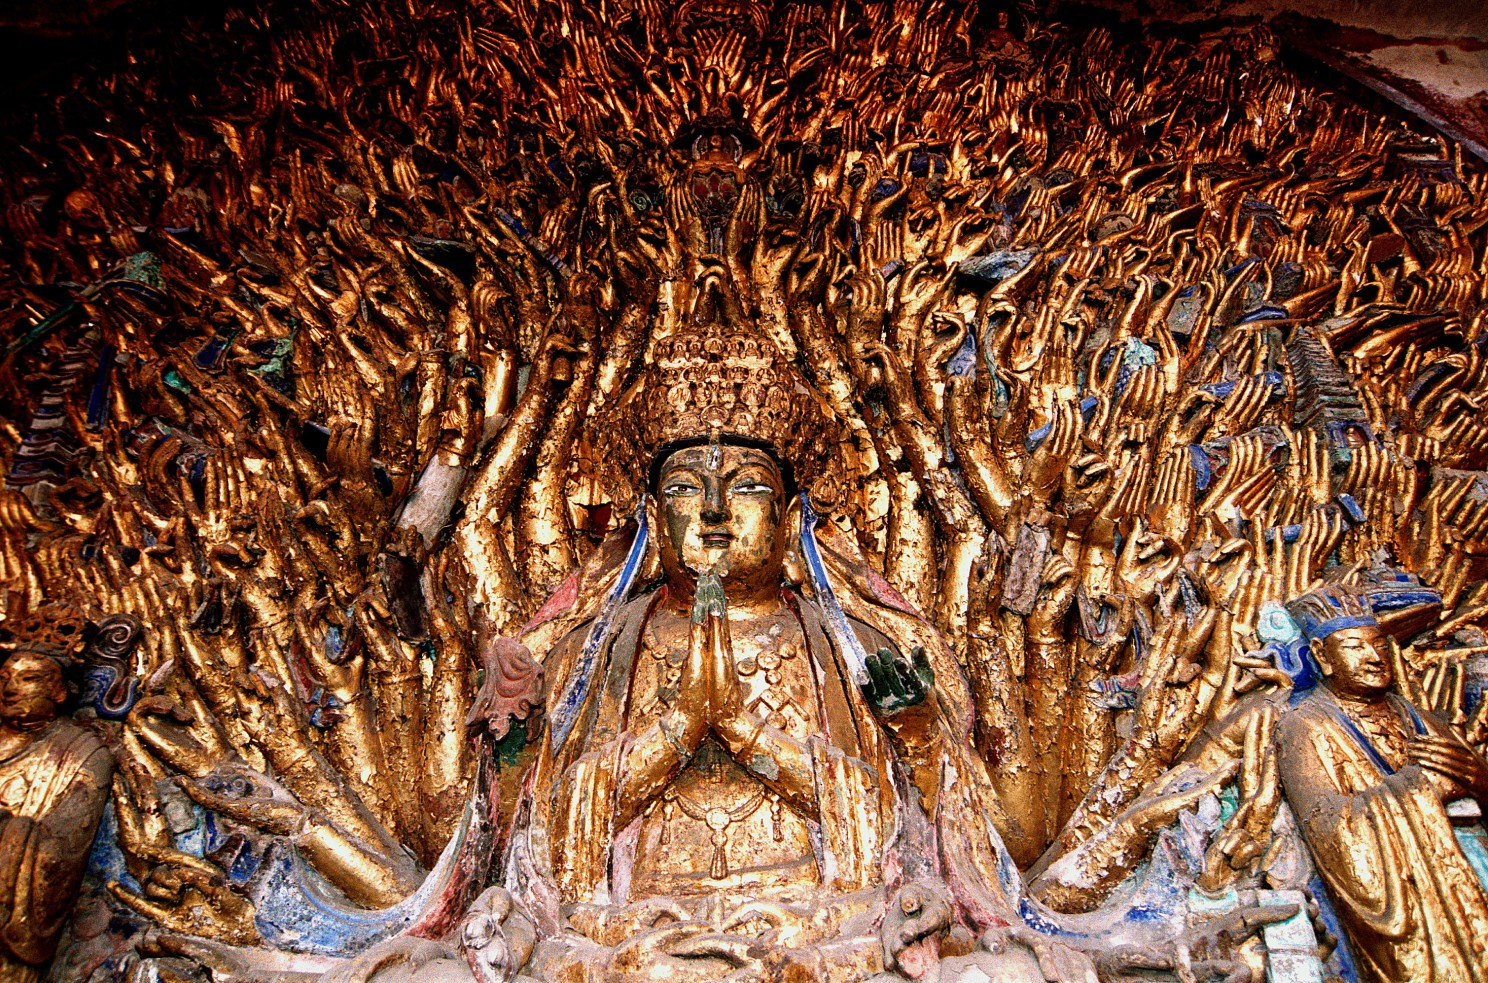 Chongqing travel guide: A religious sculpture at Dazu Rock Carvings.